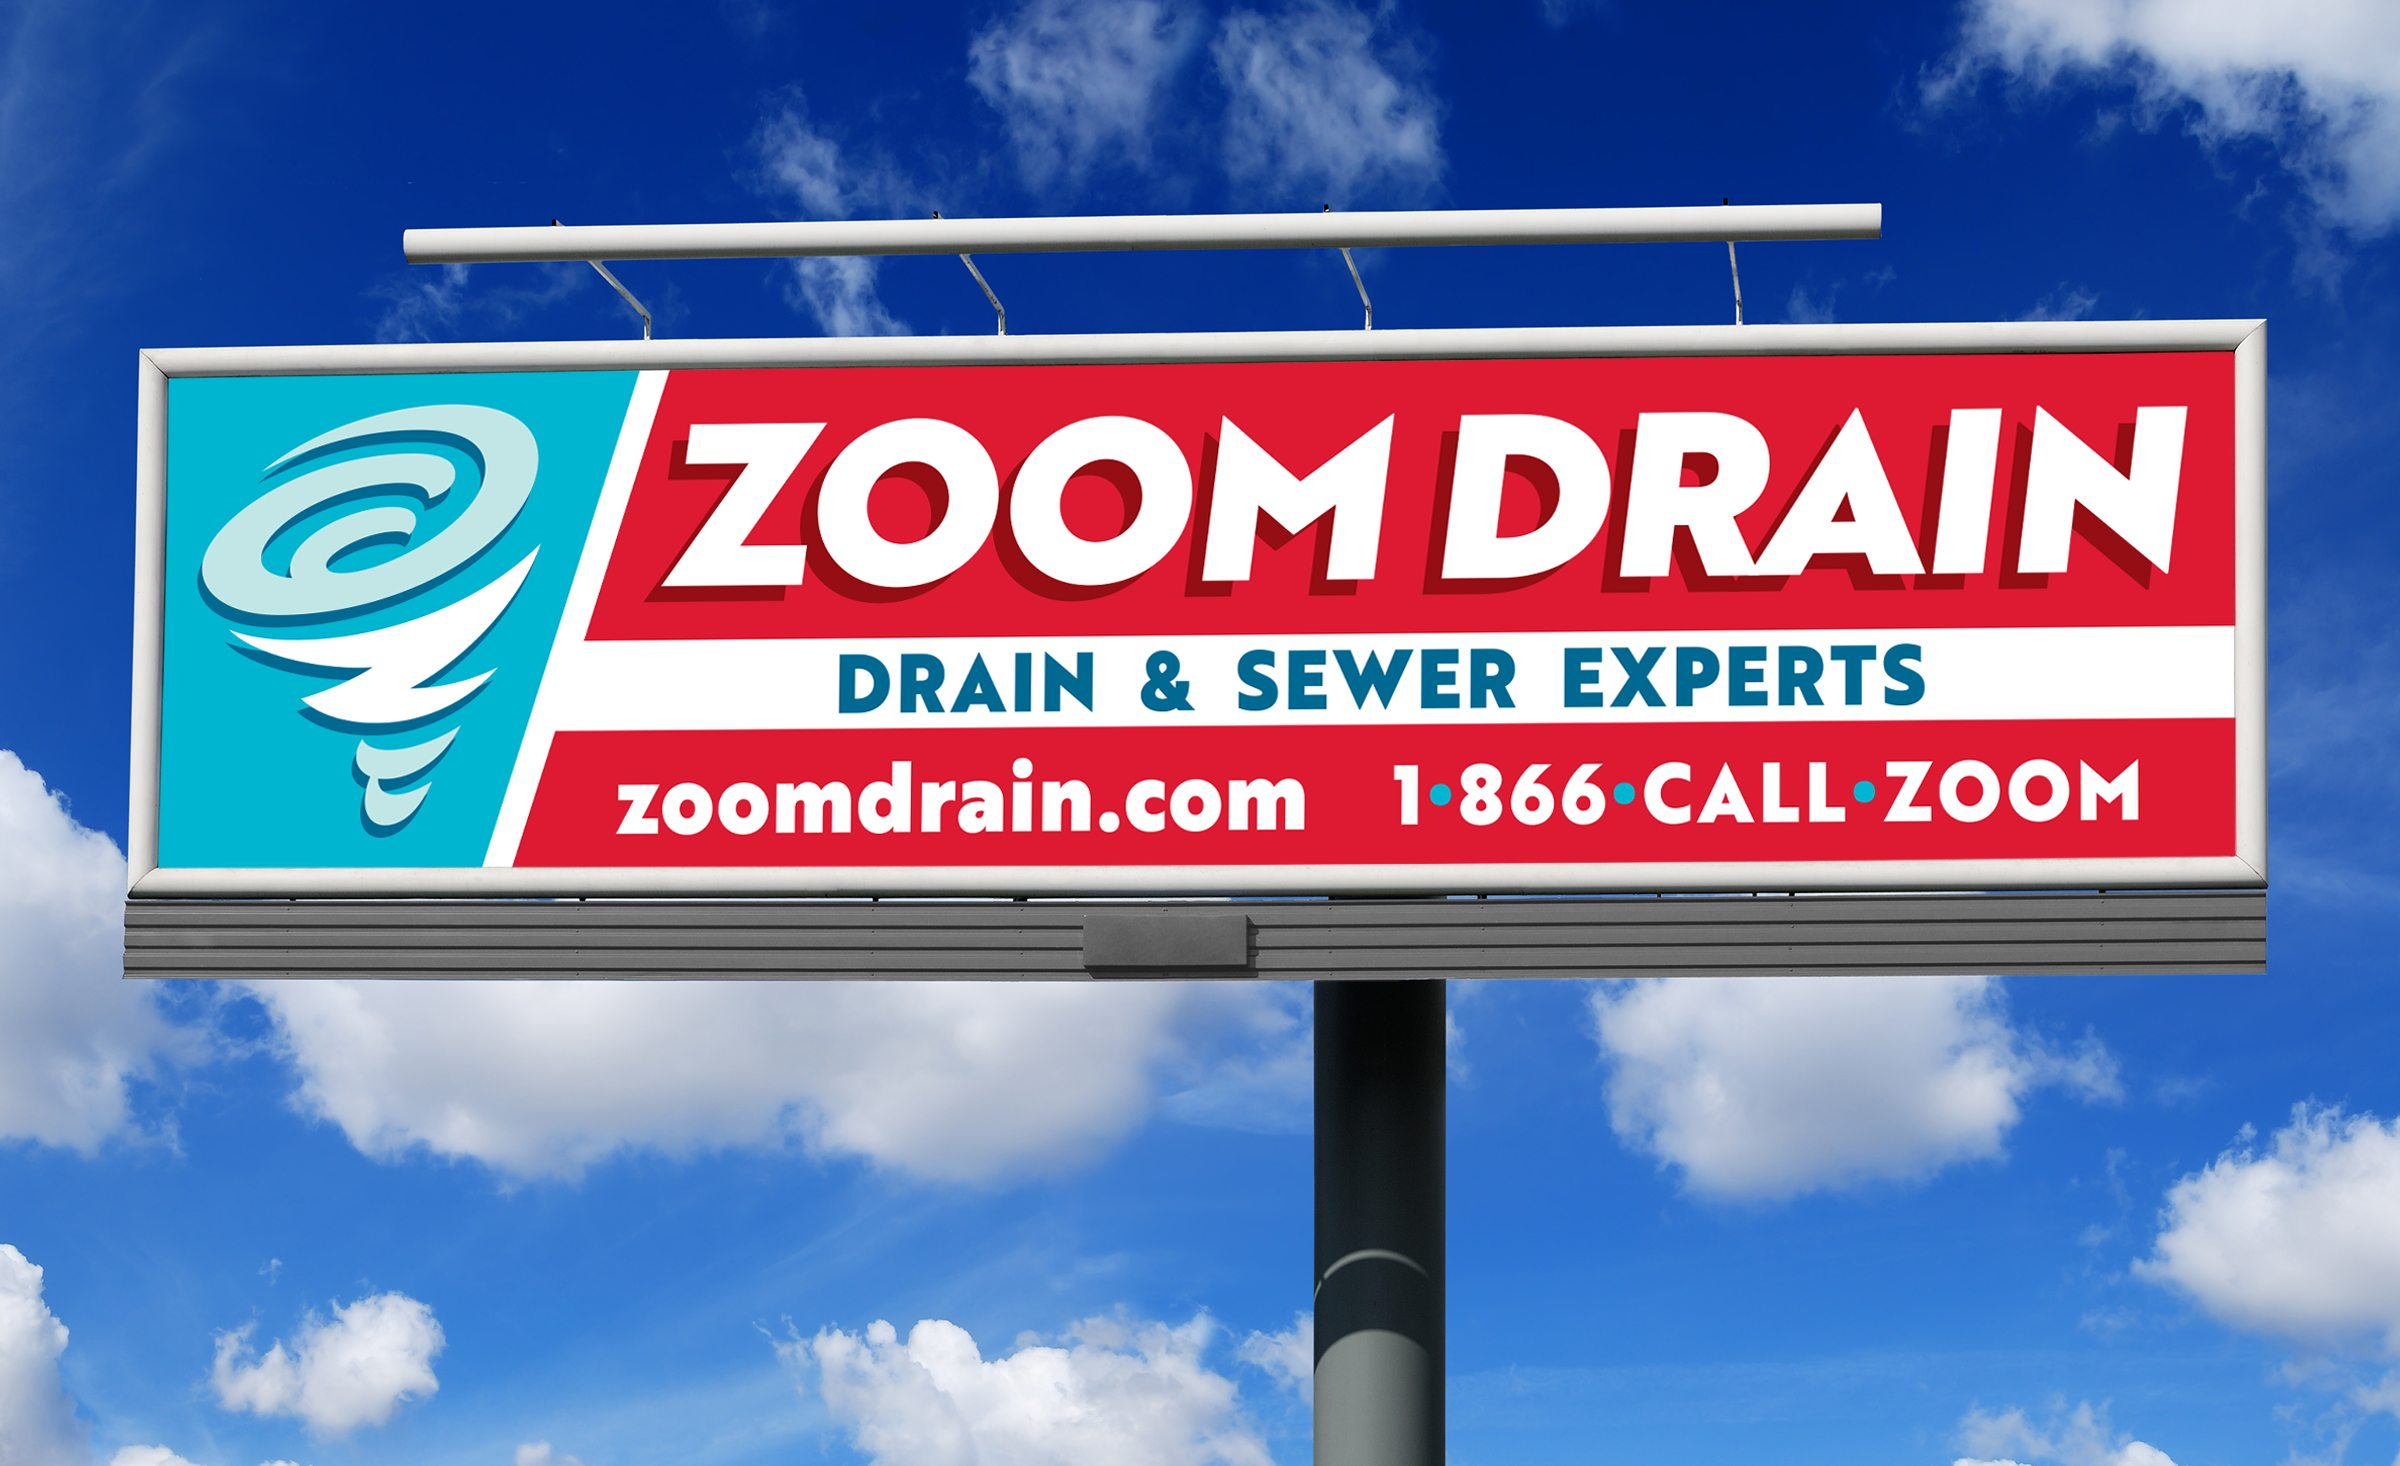 Billboard design for this drain & sewer company.